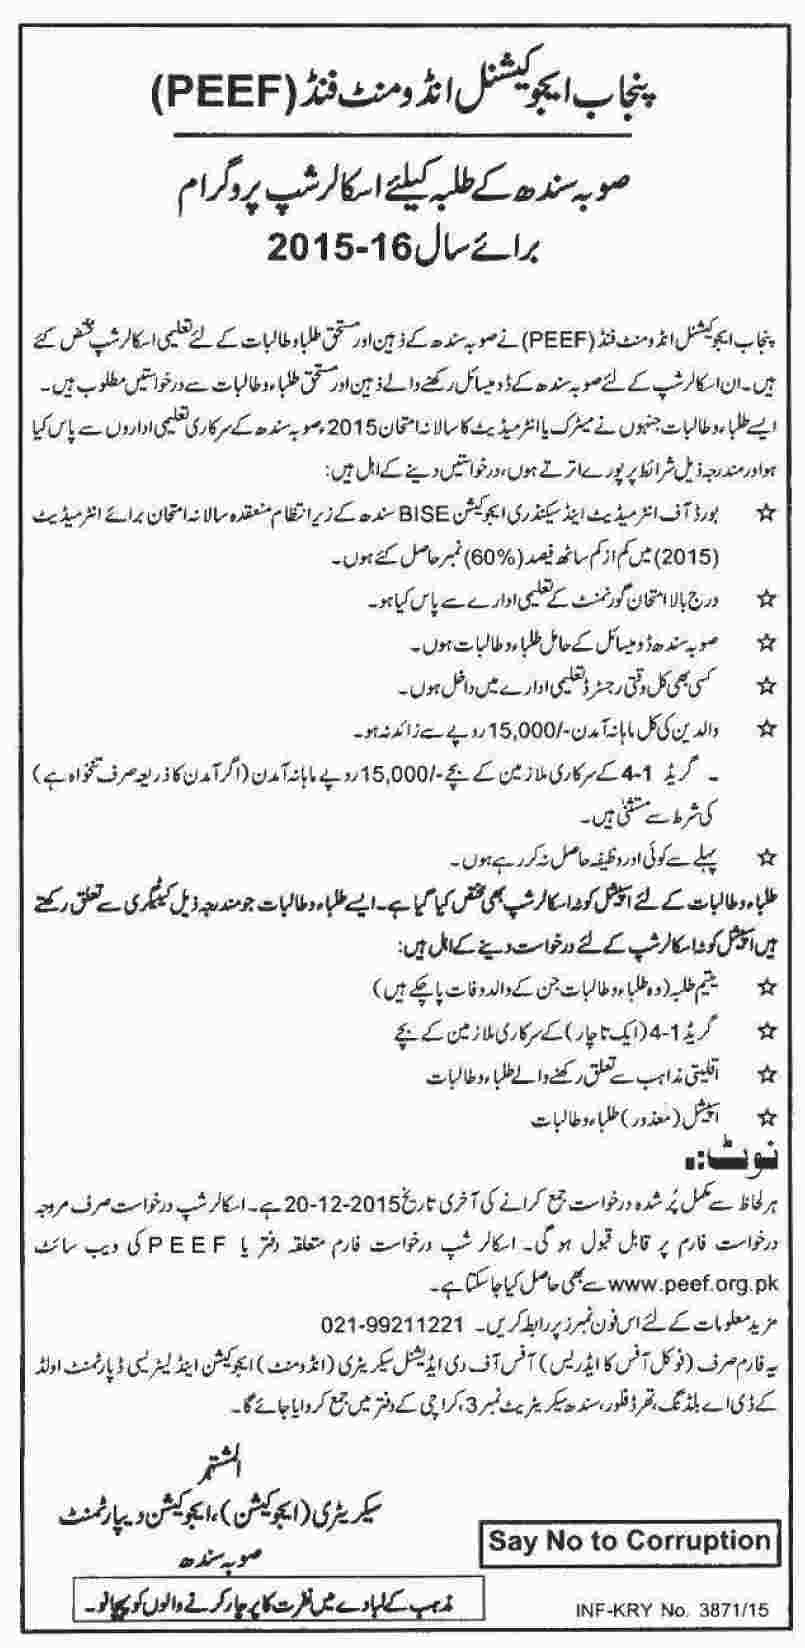 PEEF Scholarship 2016-2017 For Sindh Undergraduate peef.org.pk Form Eligibility Date